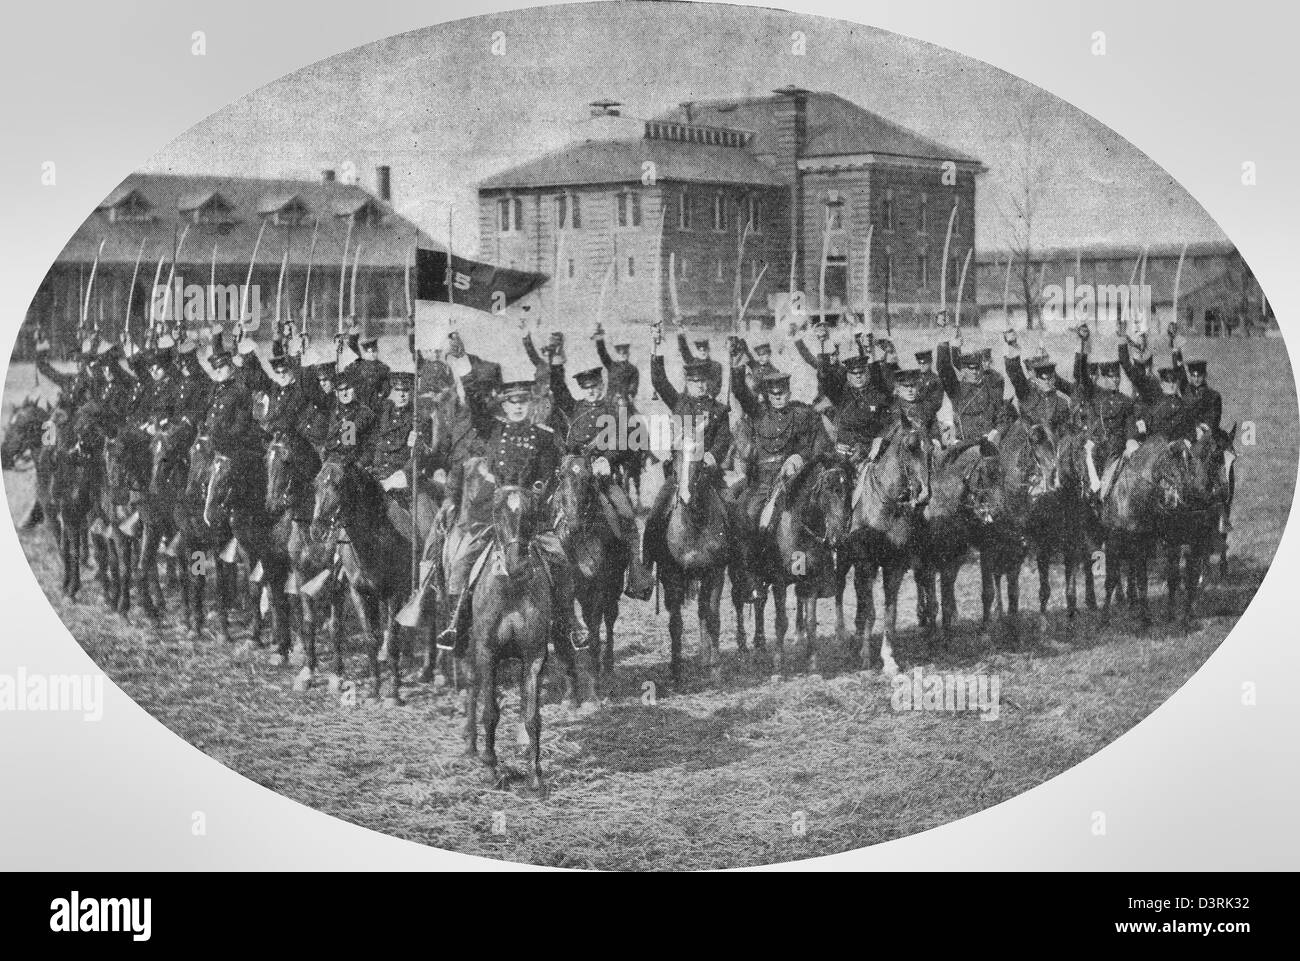 Swords ready for drill or for war - A Squadron of cavalry at Fort Myer, Virginia in 1917 - Stock Image